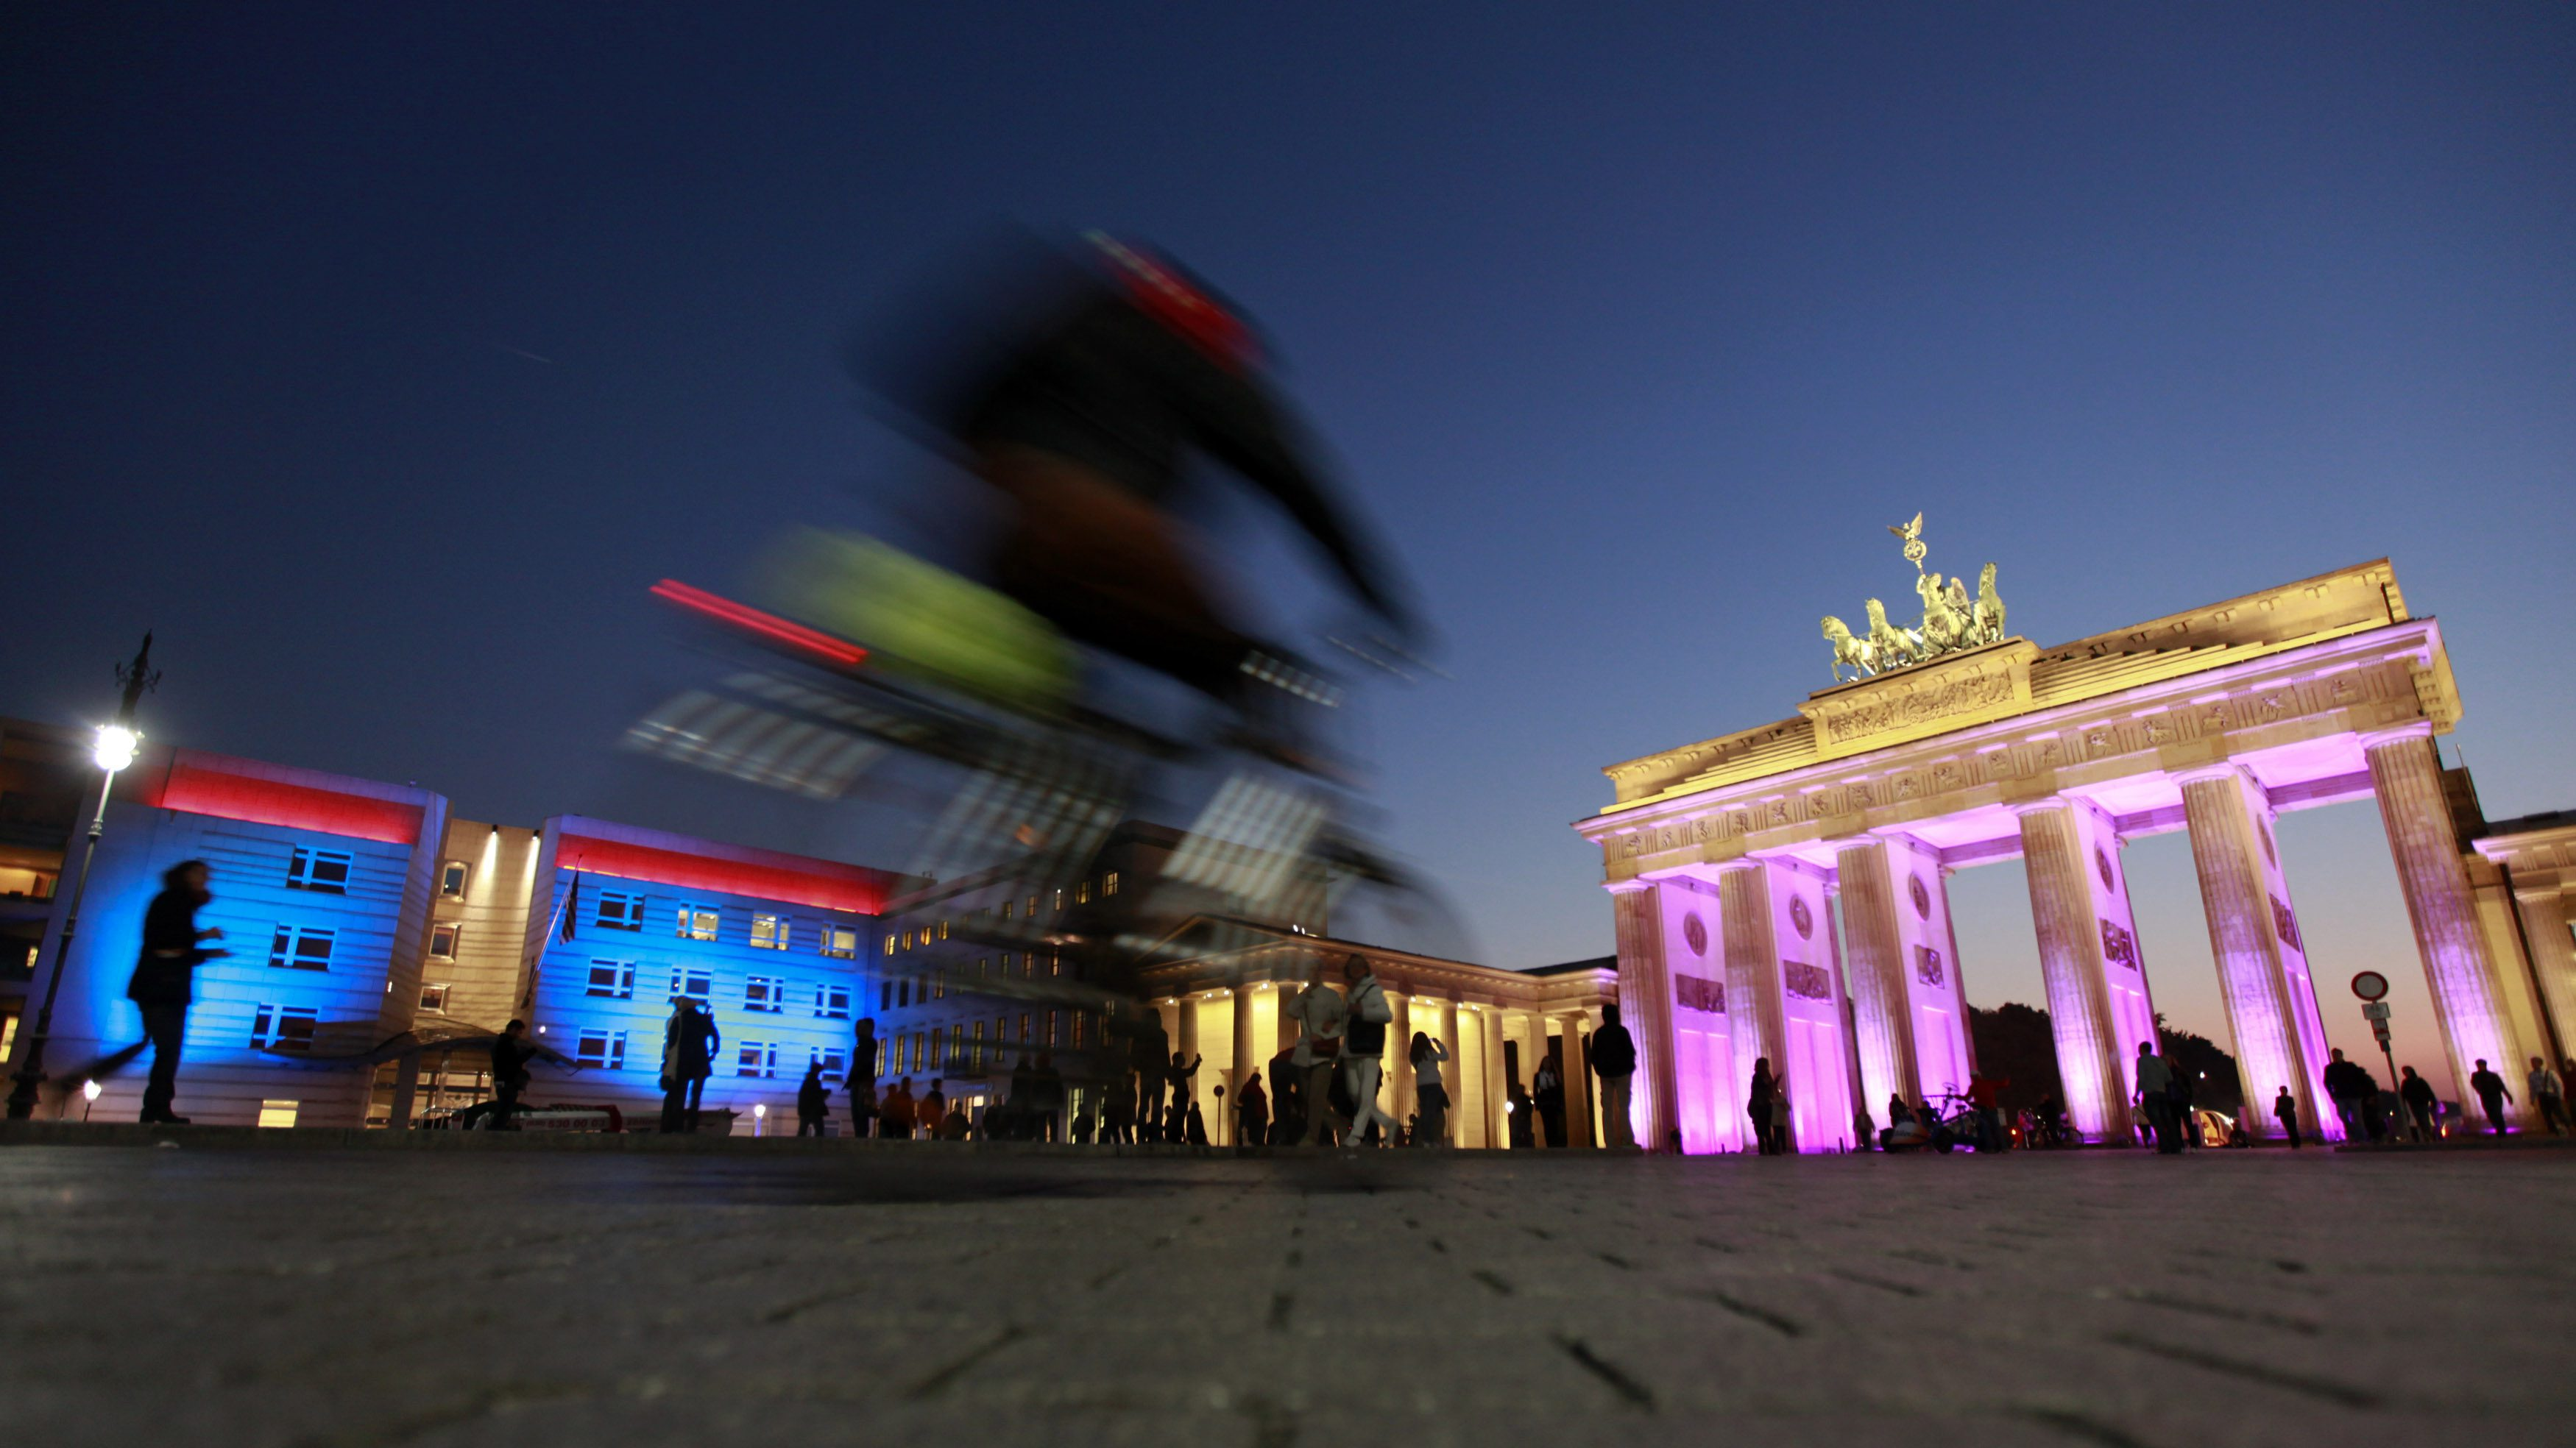 The Brandenburg Gate (R) and the U.S. embassy (L) are illuminated during a rehearsal for the upcoming Festival of Lights in Berlin October 12, 2010. Several landmarks of the German capital, including boulevards, squares, towers, historical and modern buildings, will be illuminated during the festival.